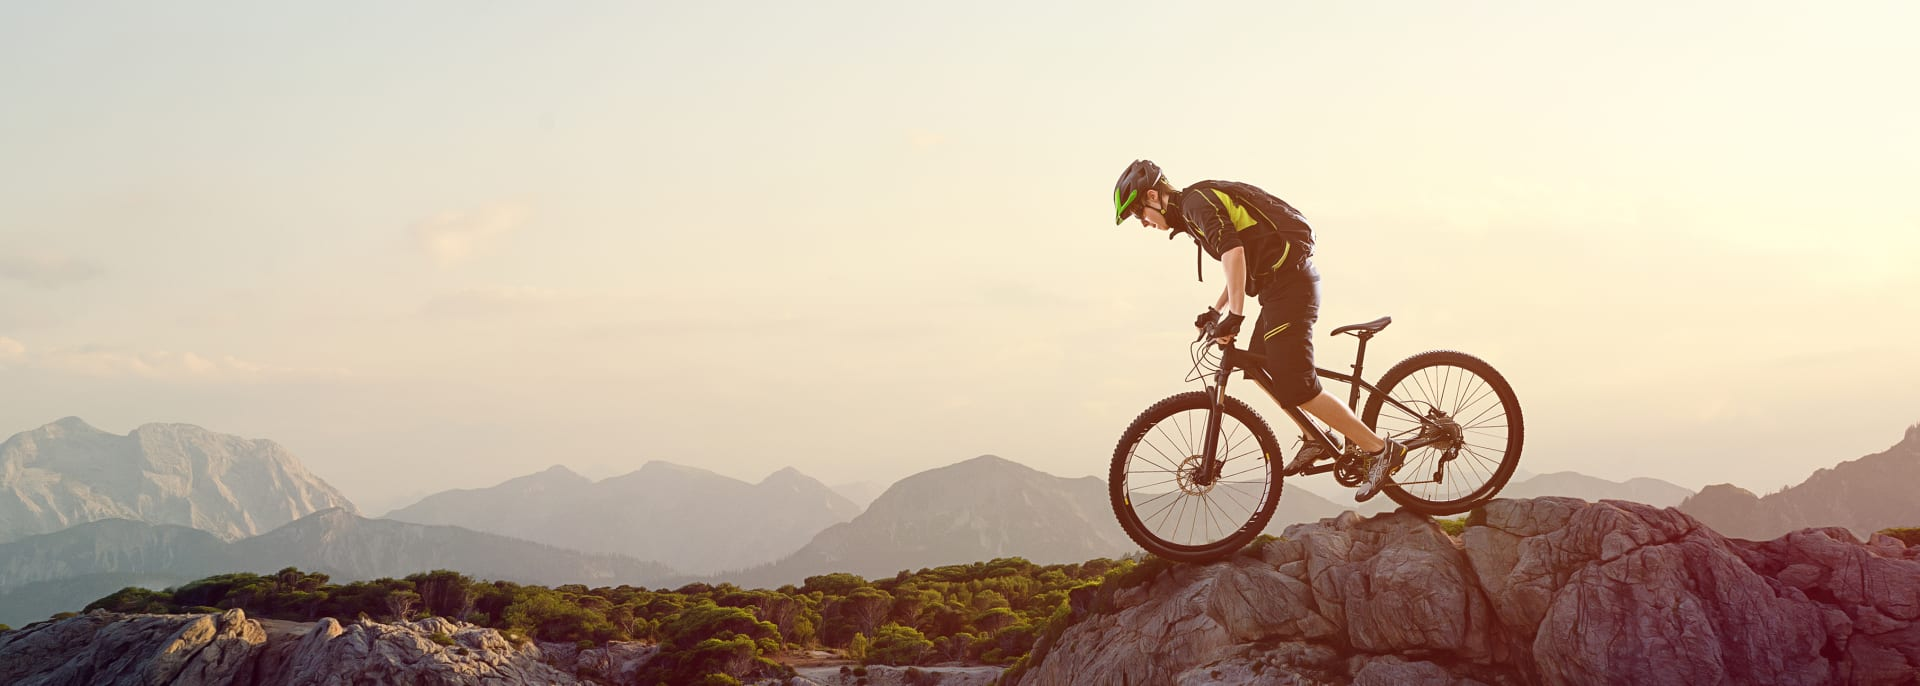 mountain bike - aktiv sport